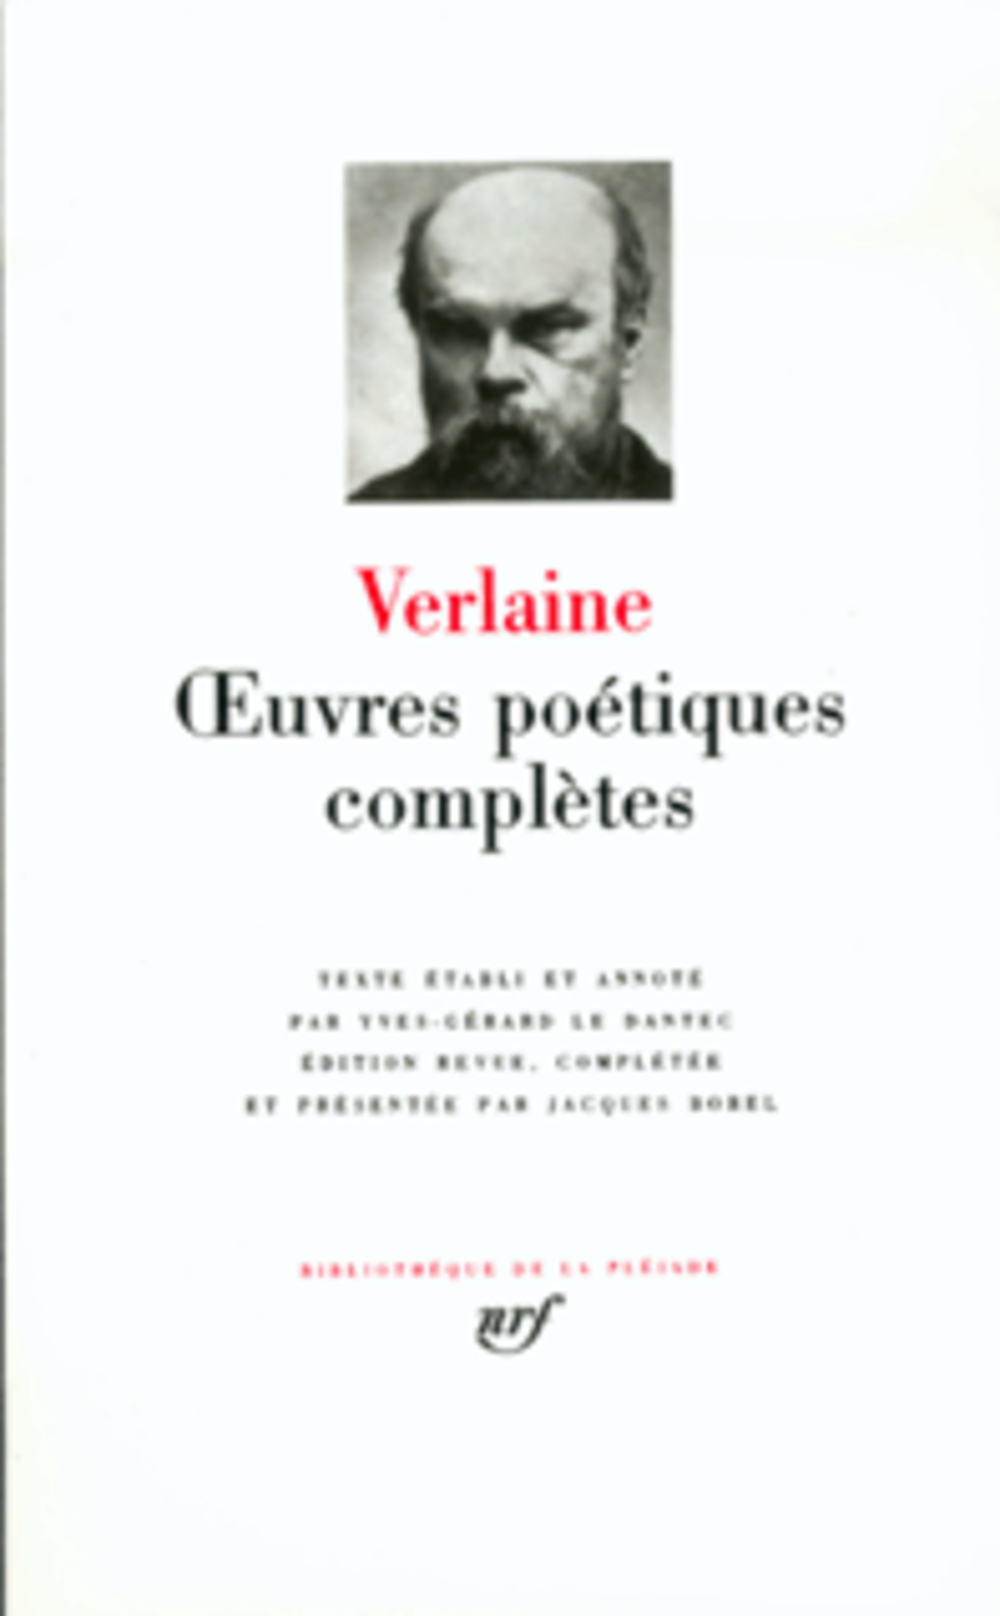 VERLAINE PAUL - OEUVRES POETIQUES COMPLETES